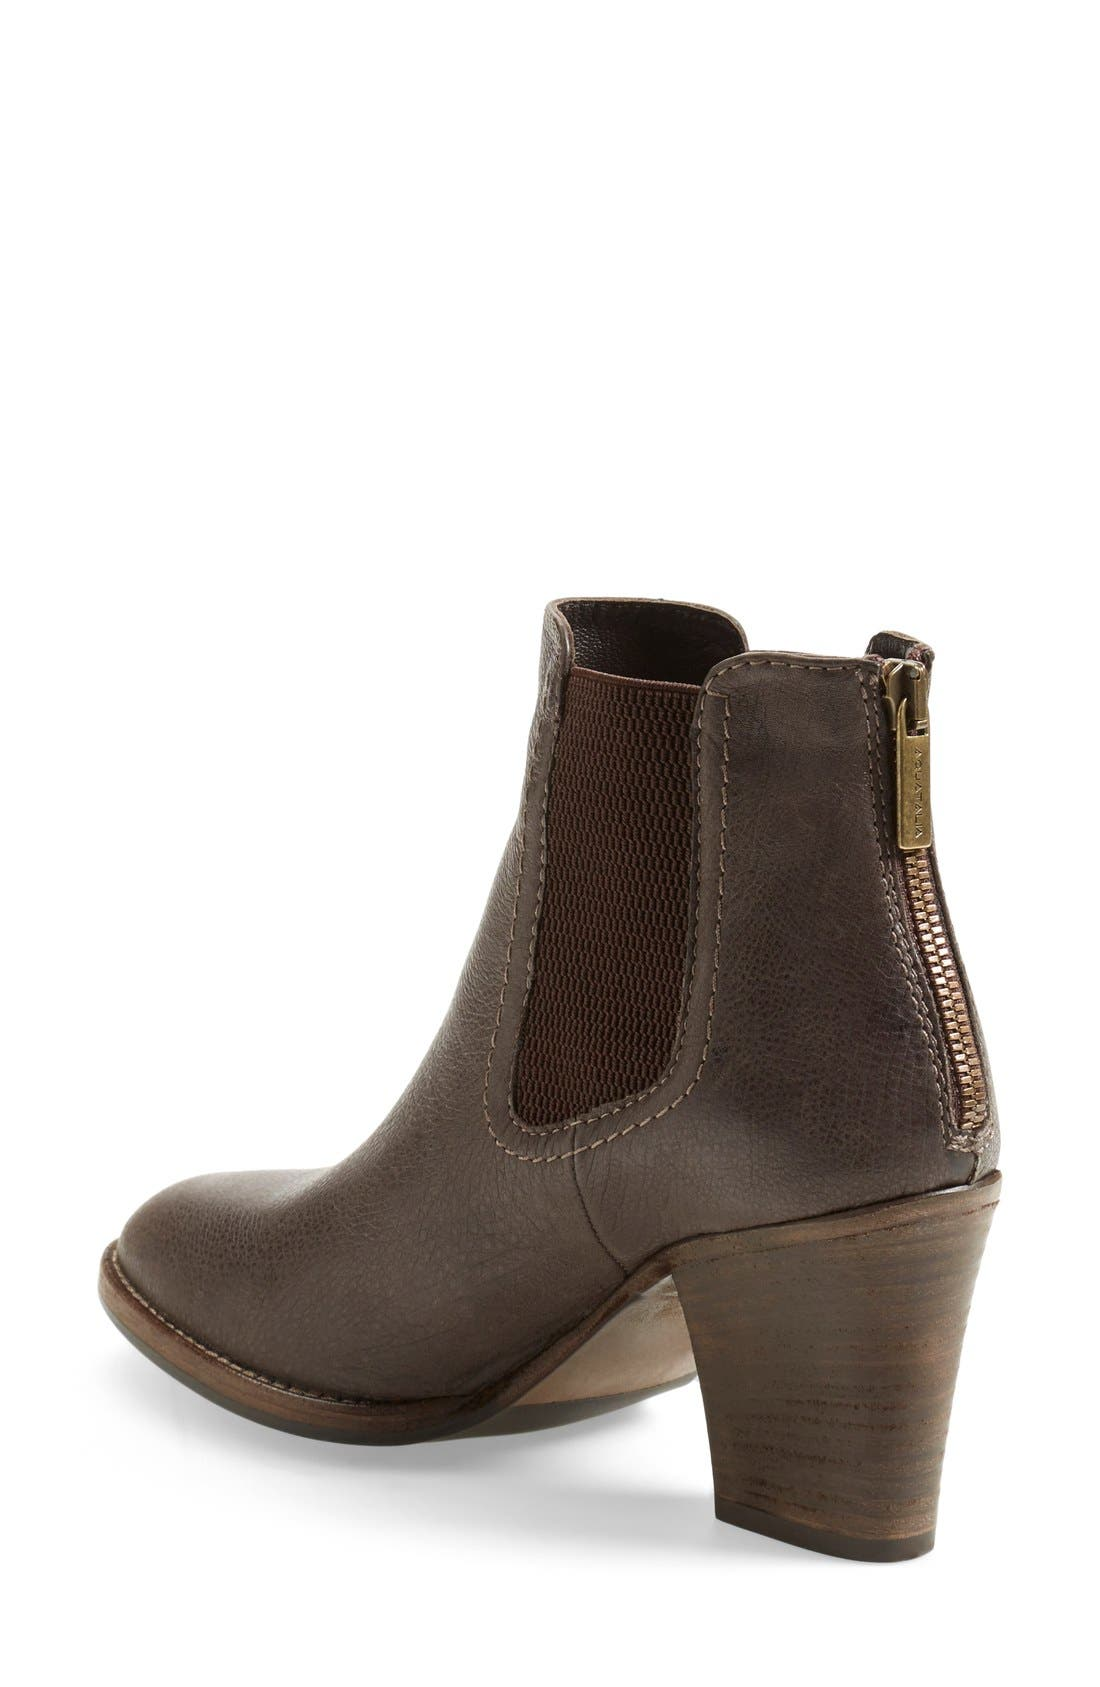 Alternate Image 2  - Aquatalia 'Fairly' Weatherproof Ankle Bootie (Women)